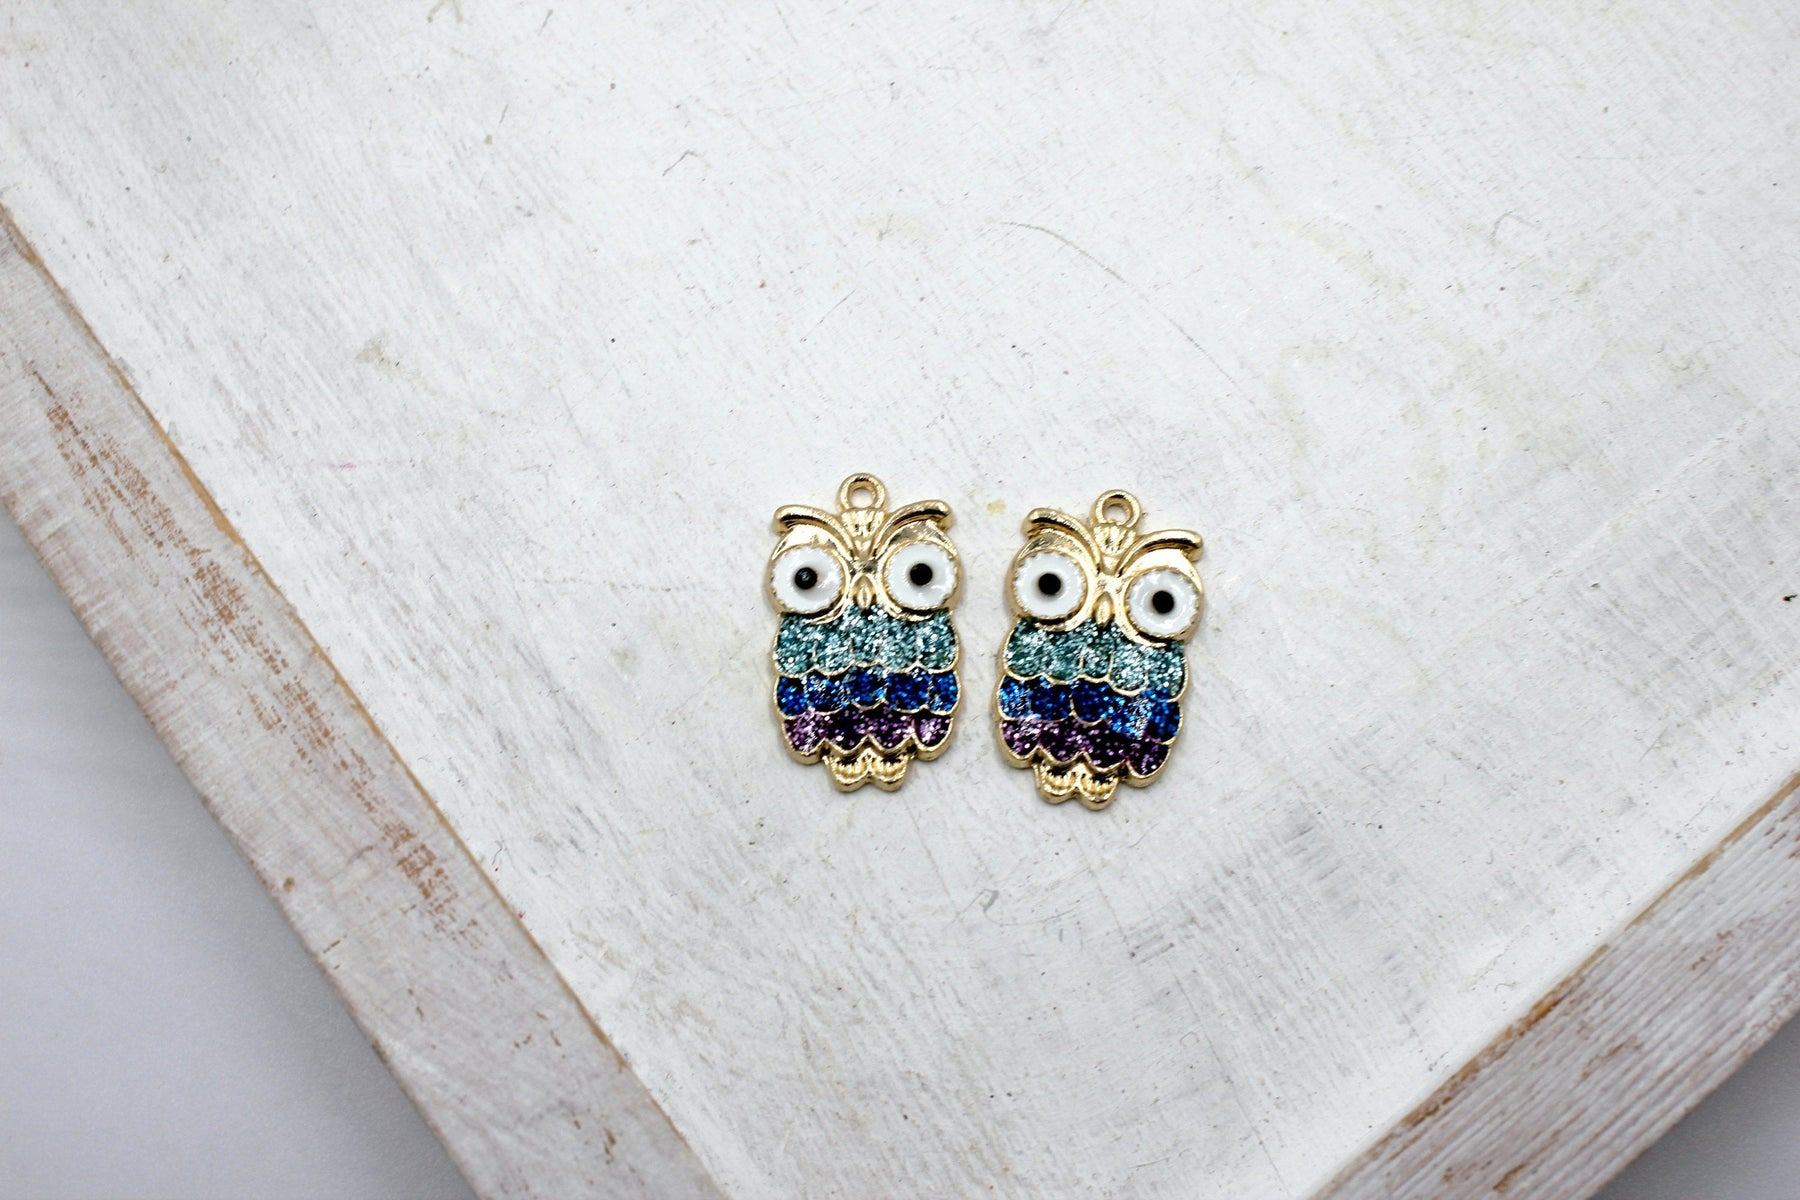 rhinestone owl charm, gold plated charms, owl charms, rhinestone charm, mixed metal, 23mm x 13mm, hole 1.5mm, sold as 2 pieces.